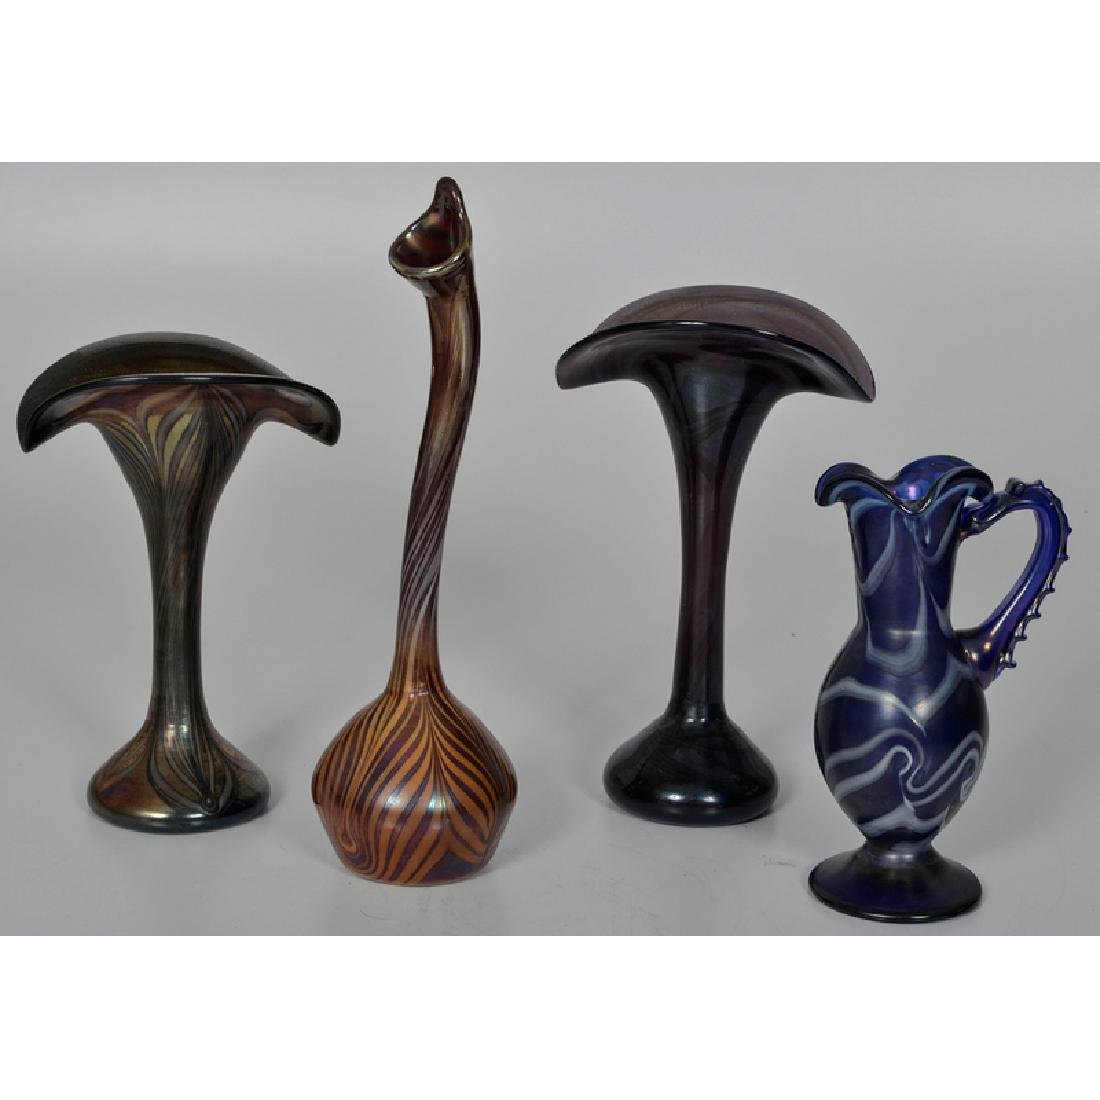 Art Glass Vases and Pitcher